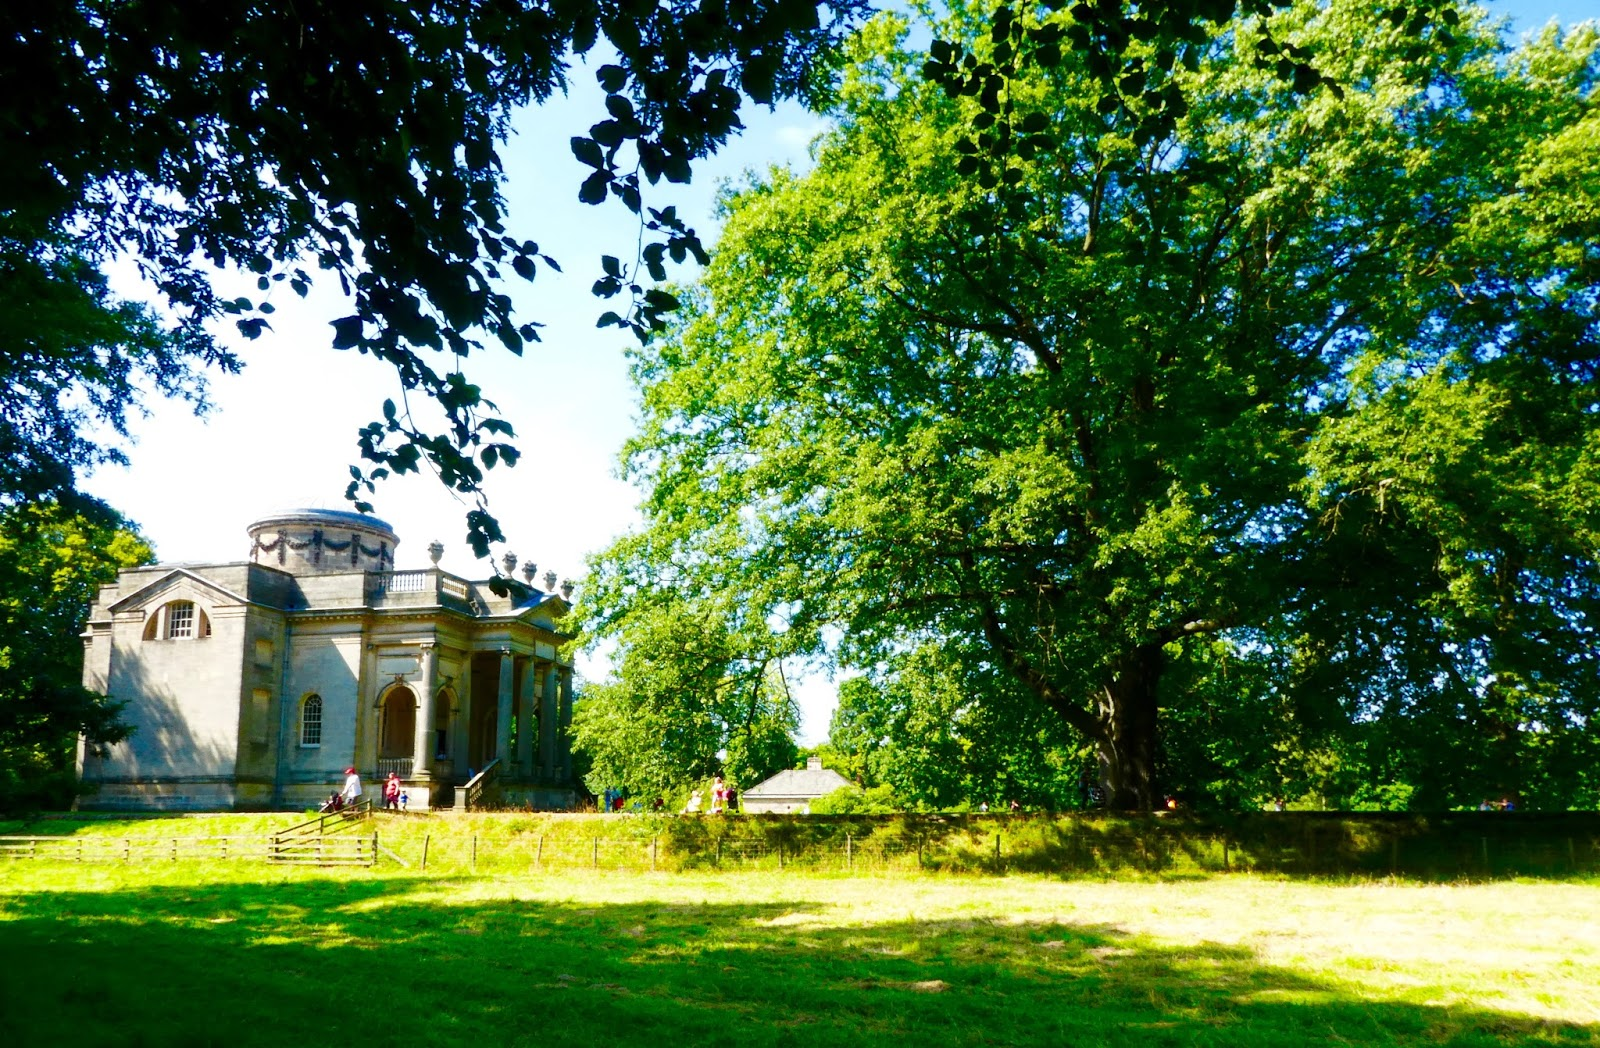 Gibside - A North East National Trust Property that's ideal for Picnics, Adventure Playground fun and beautiful gardens - Gibside Chapel